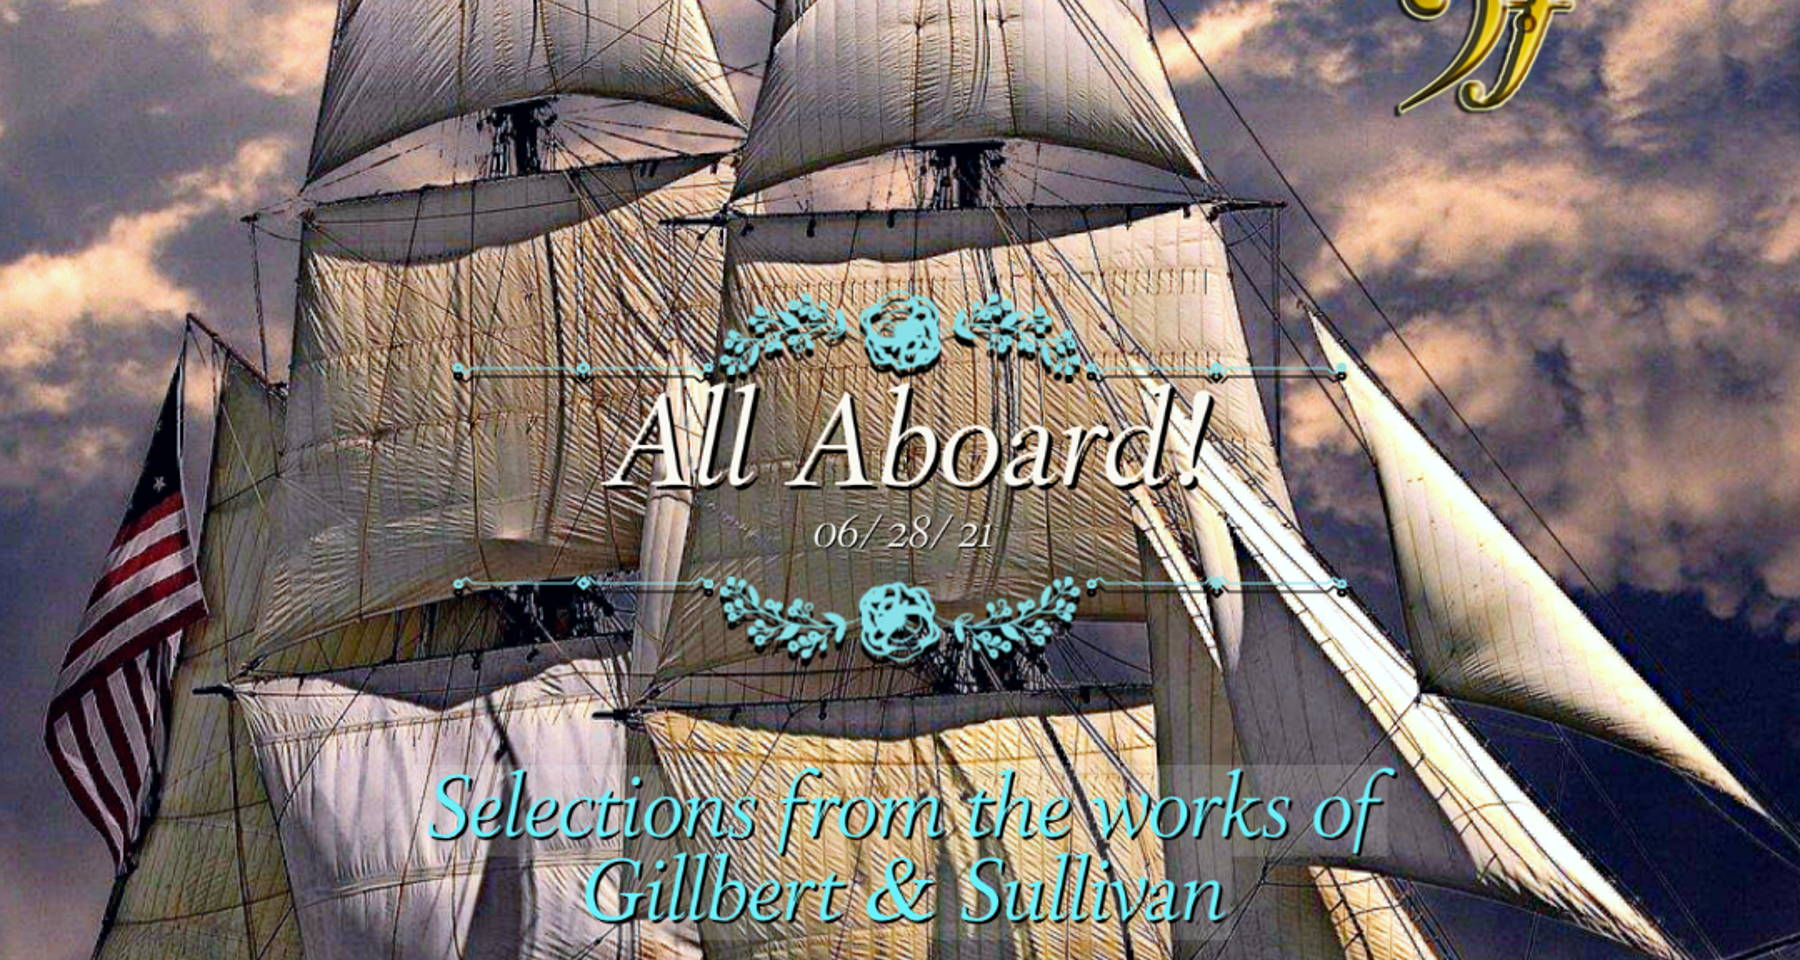 All Aboard the HMS Pinafore (and other songs by Gillbert and Sullivan)